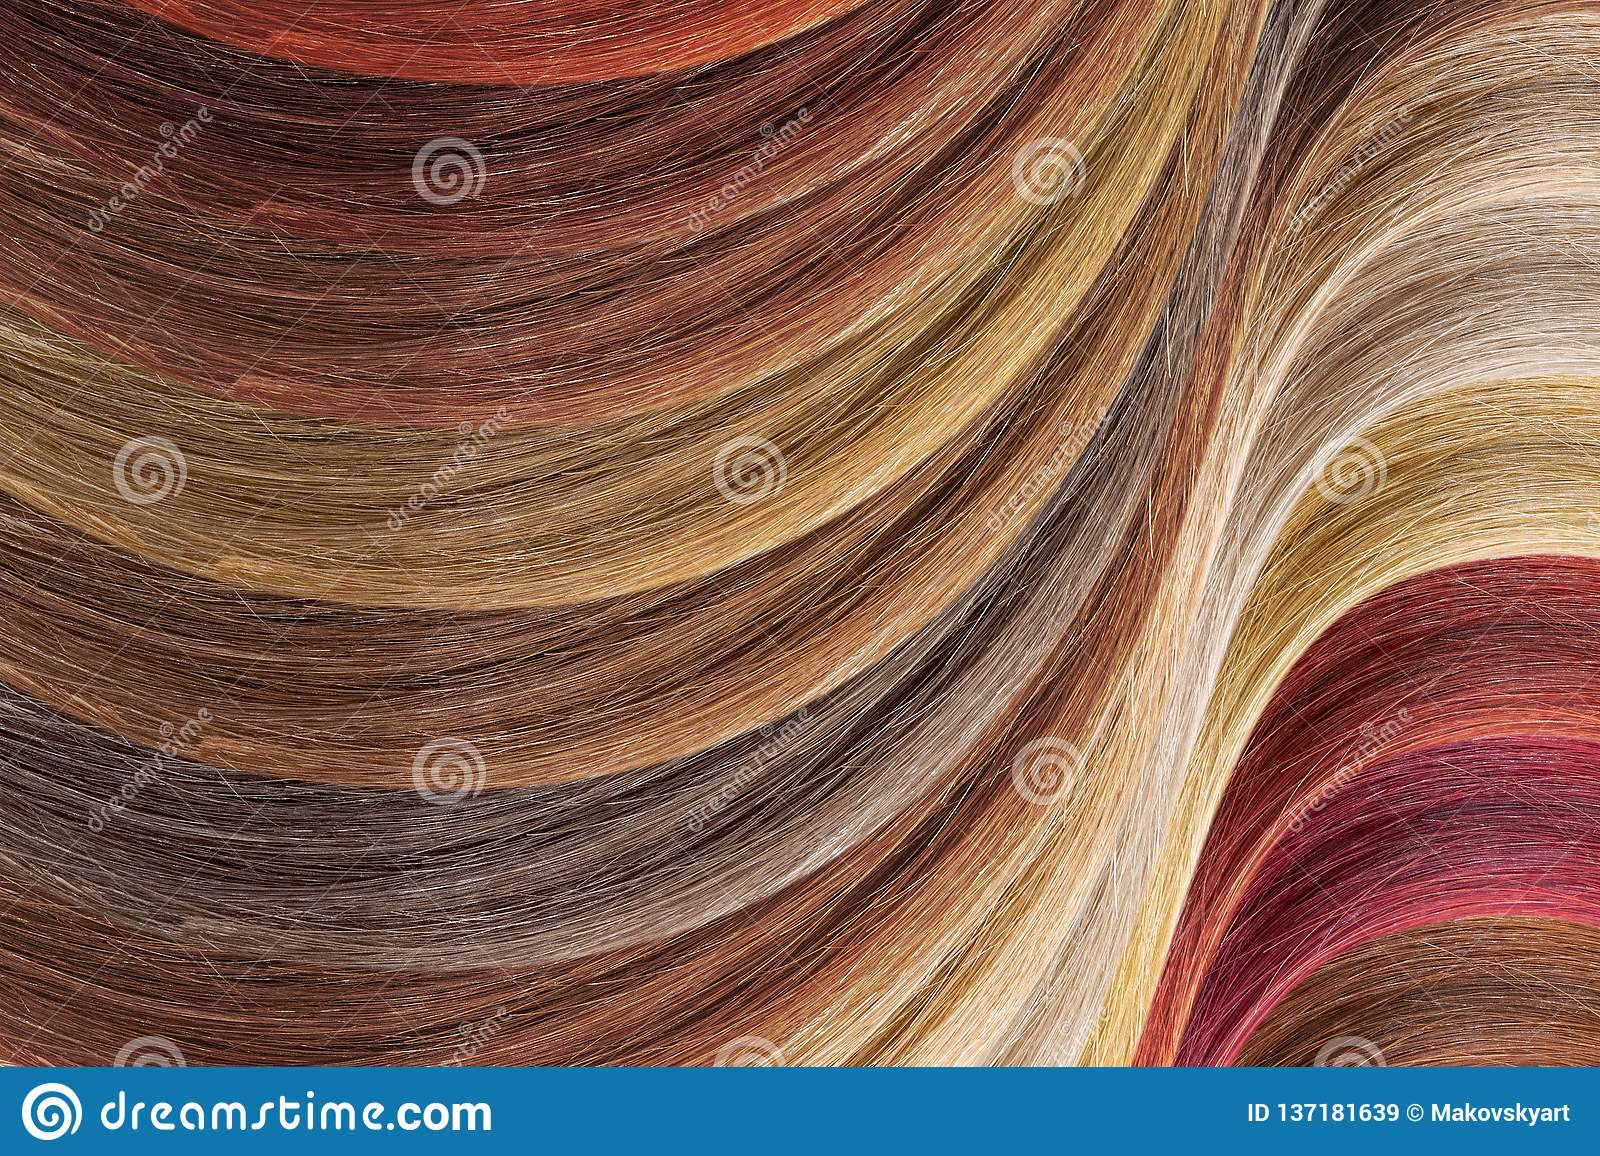 Hair colors palette as background. Dyed samples